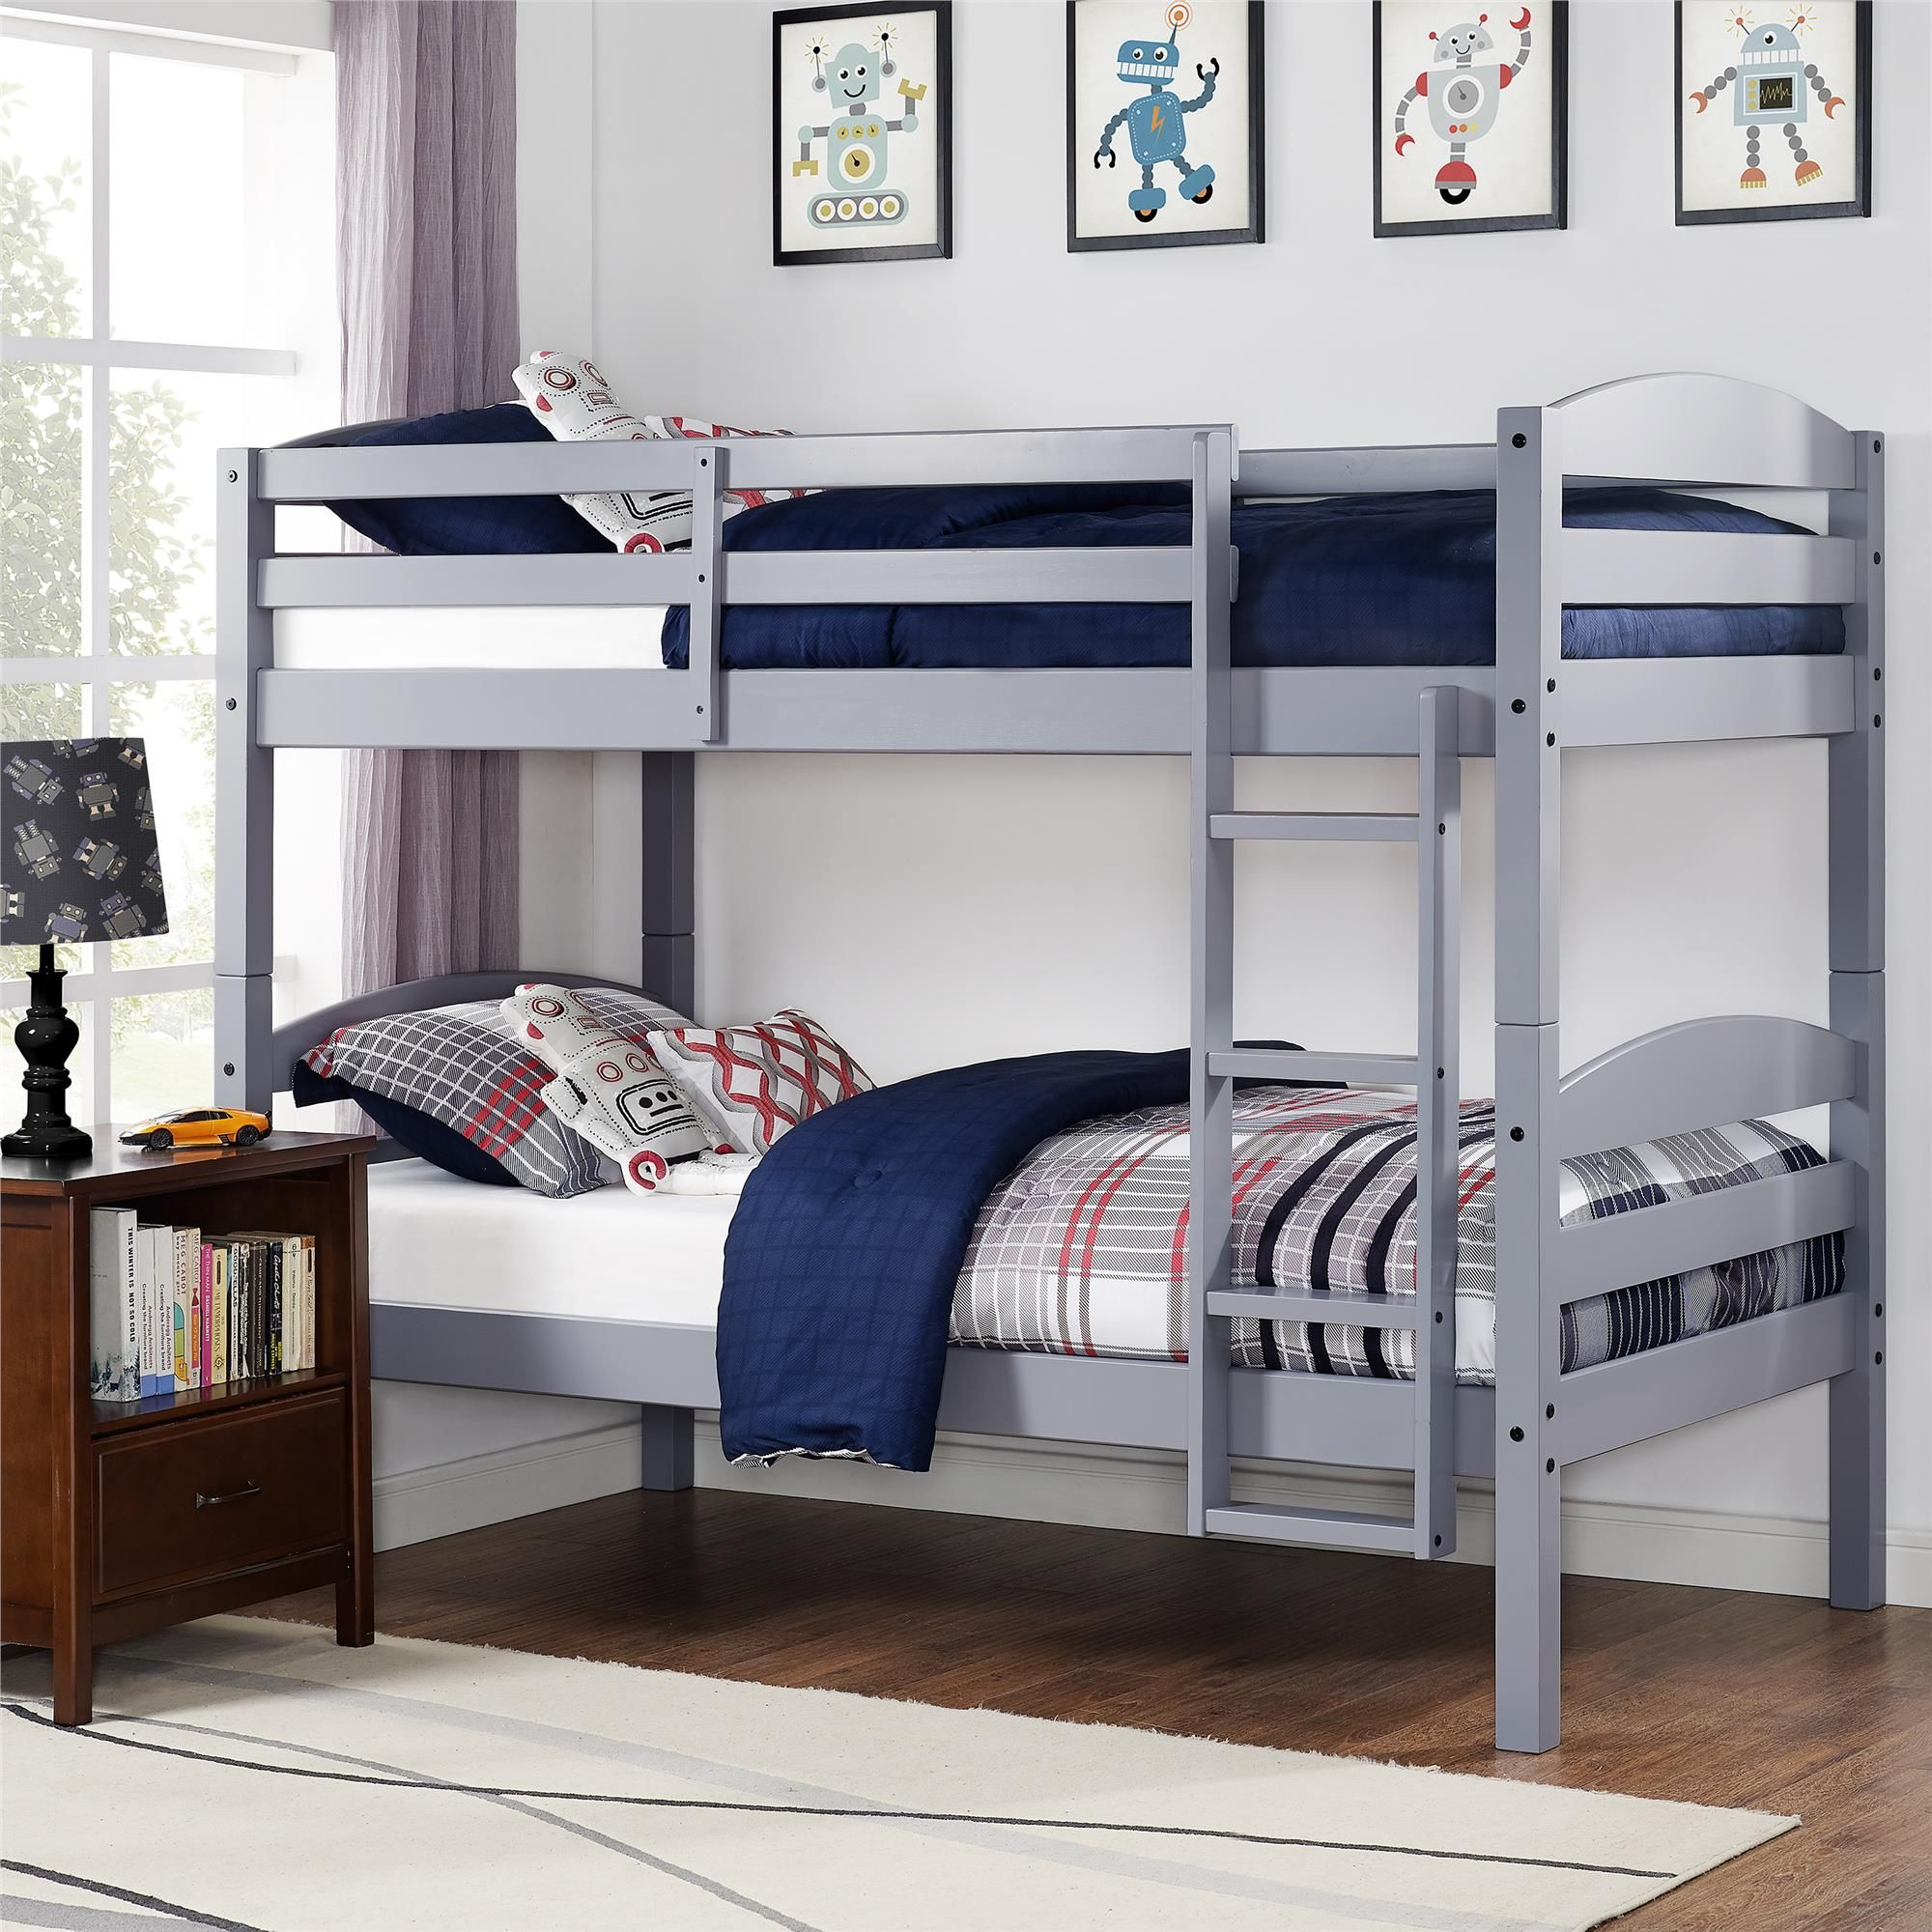 Better Homes & Gardens Leighton Wood TwinOverTwin Bunk